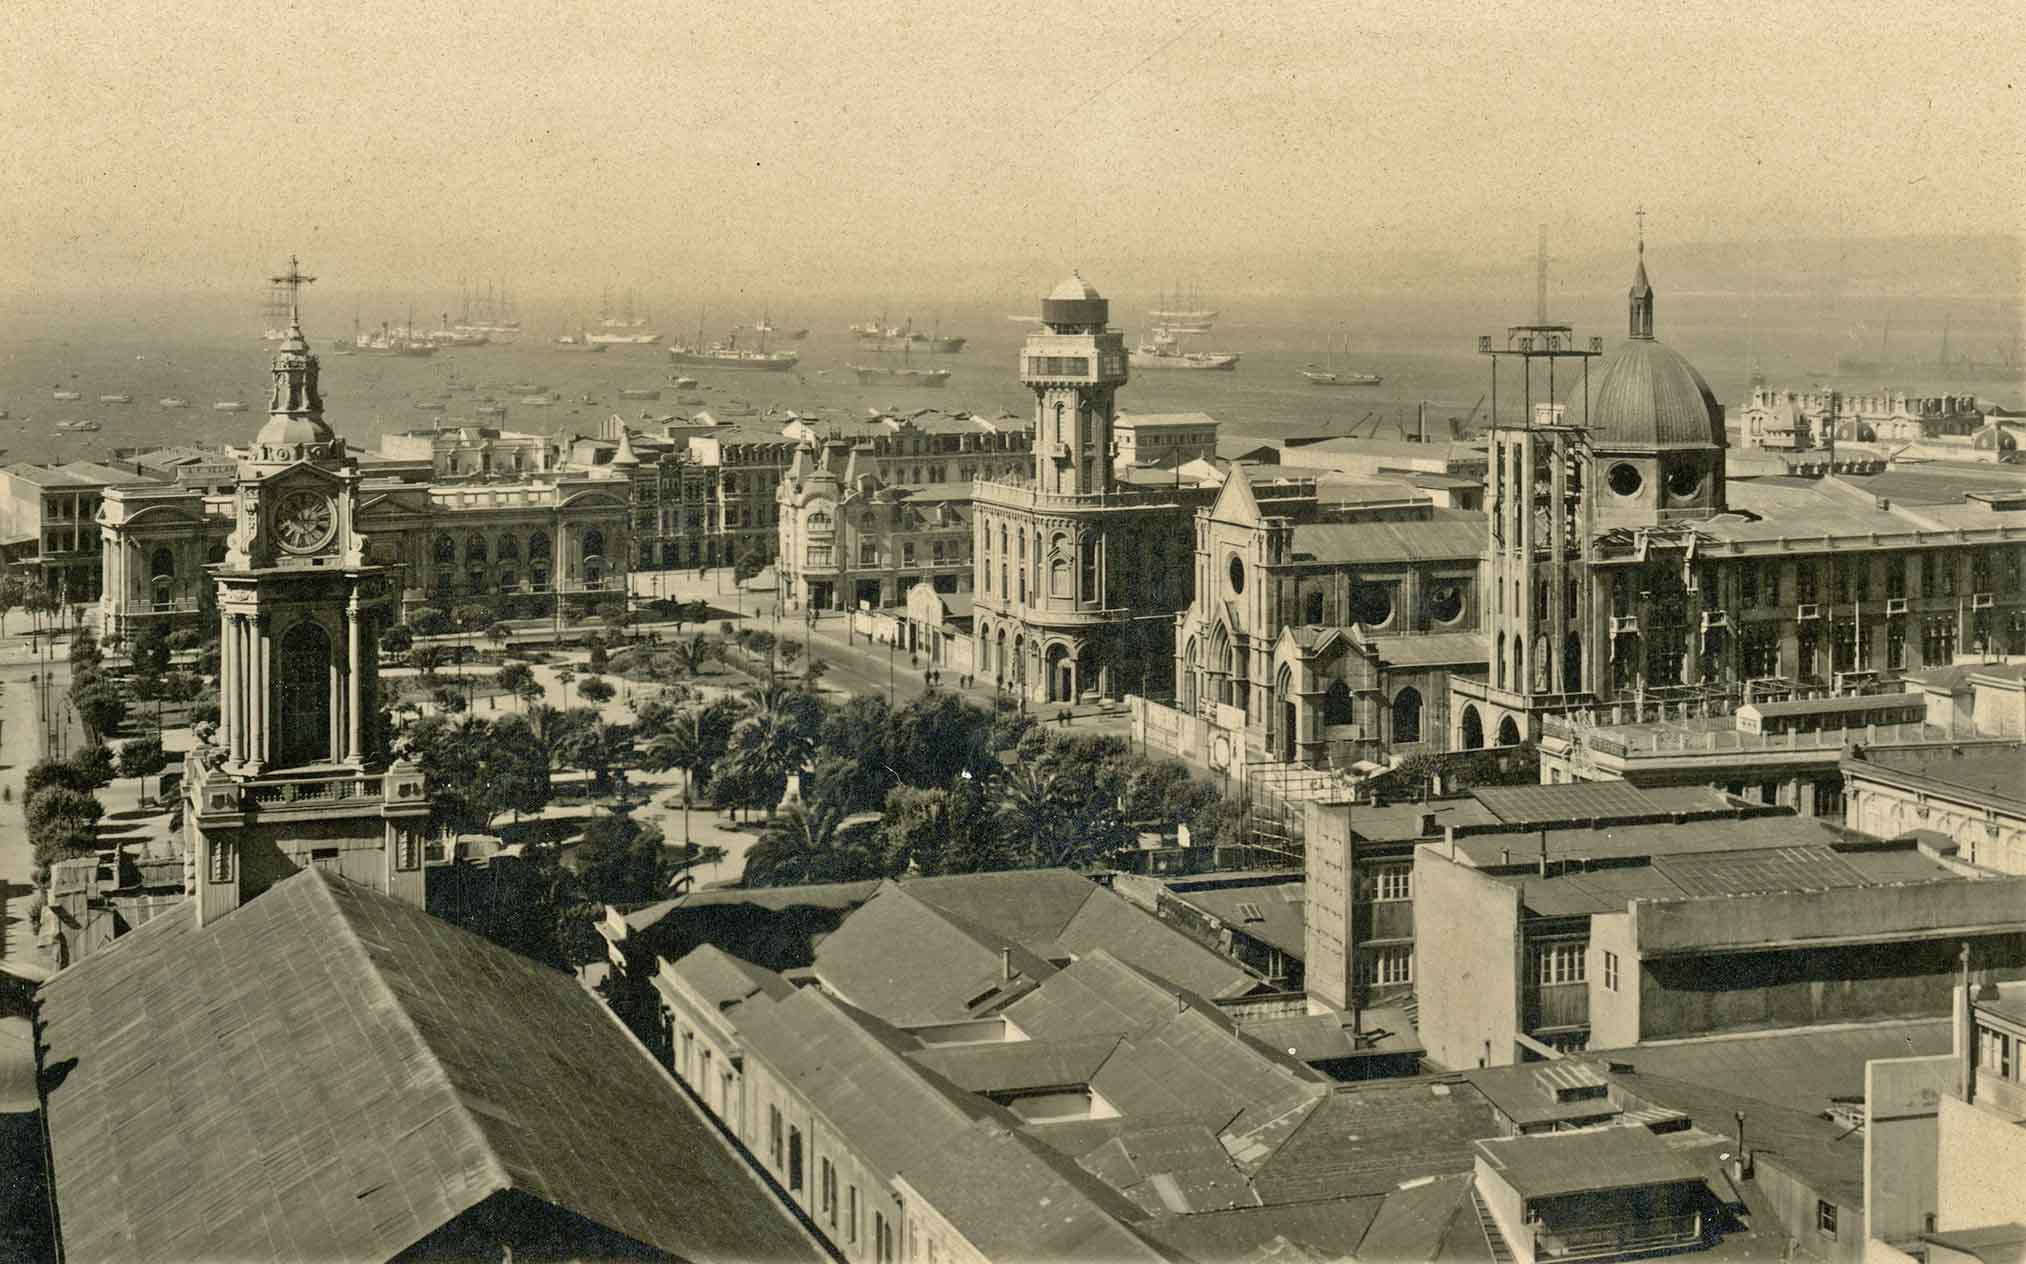 Enterreno - Fotos históricas de chile - fotos antiguas de Chile - Plaza Victoria de Valparaíso, 1925